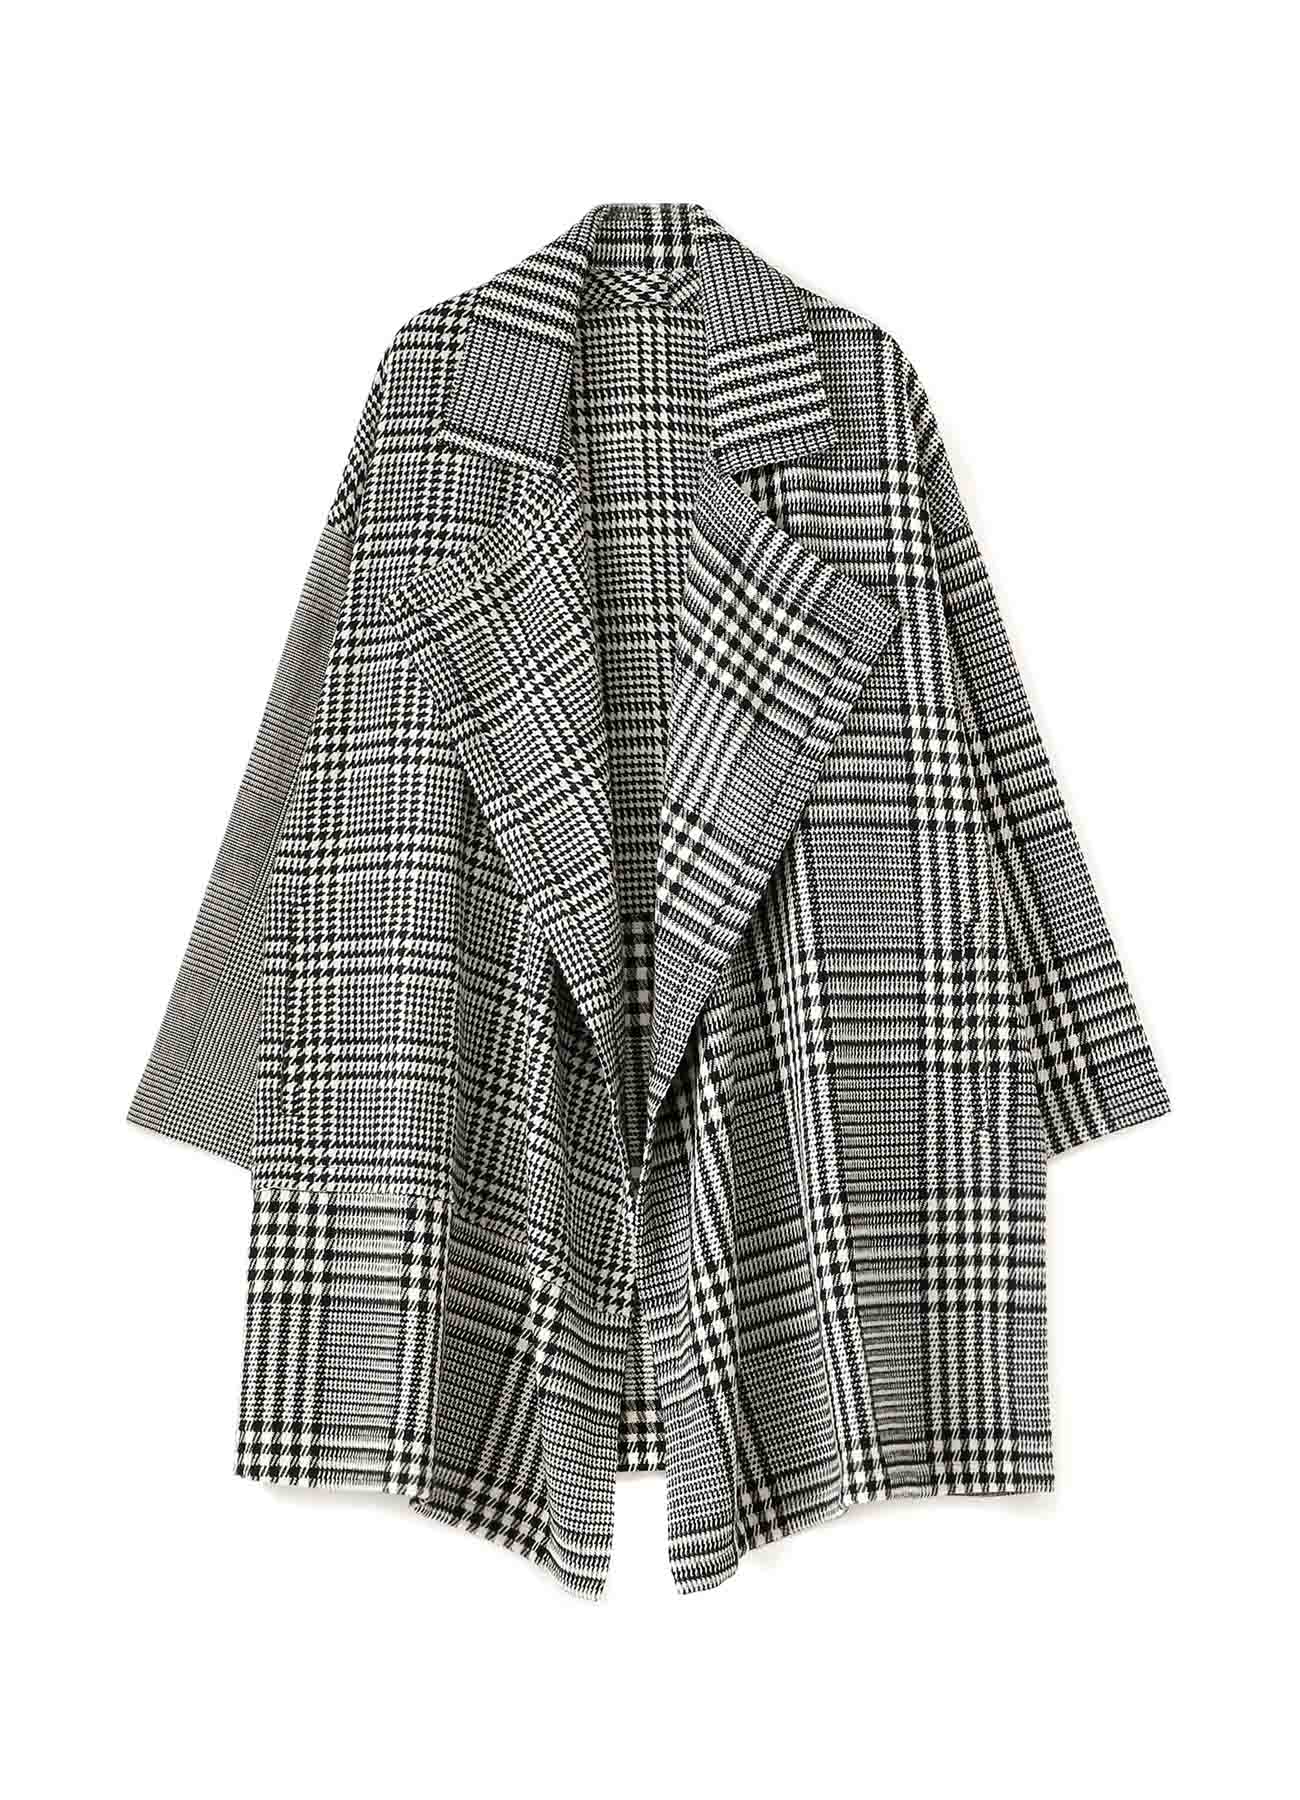 Glen Check Tweed Frame Double Collar Drape Coat